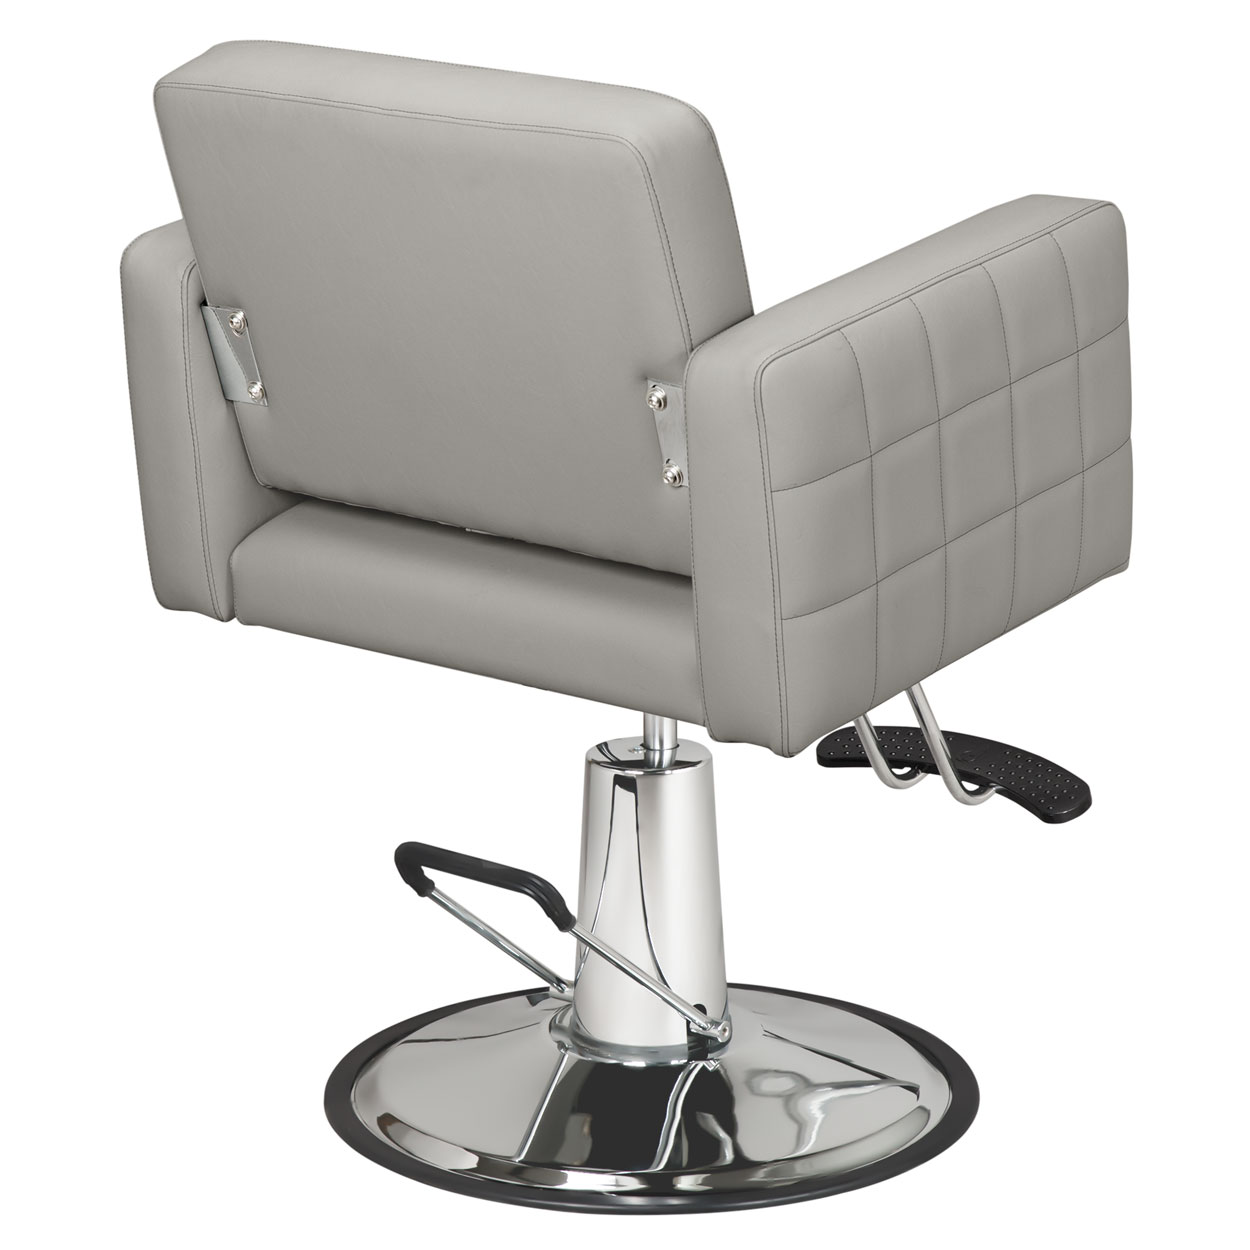 Pibbs 2106 Matera Styling Chair alternative product image 2